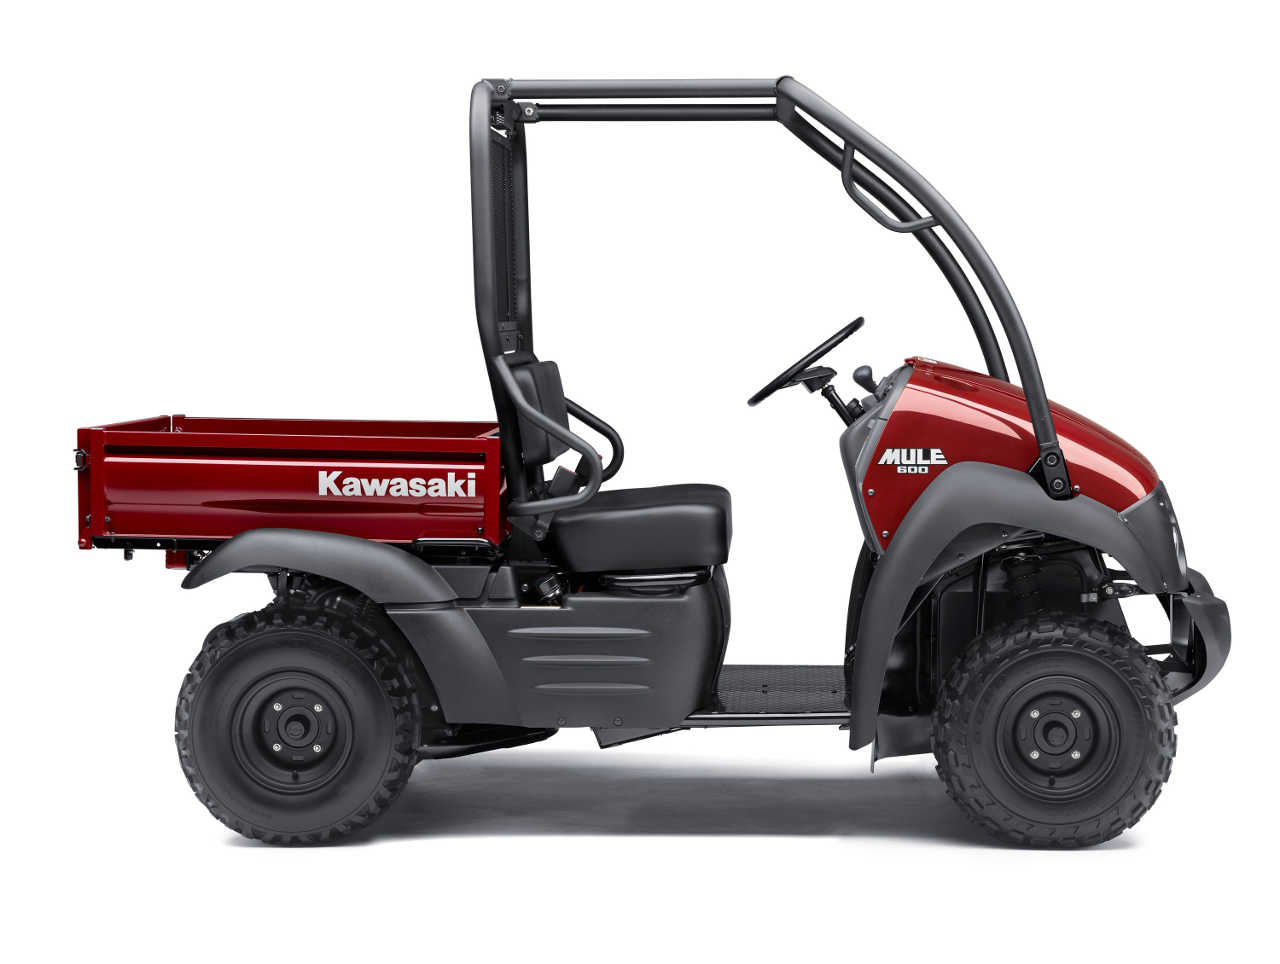 2016-kawasaki-mule600-red_-right_-studio